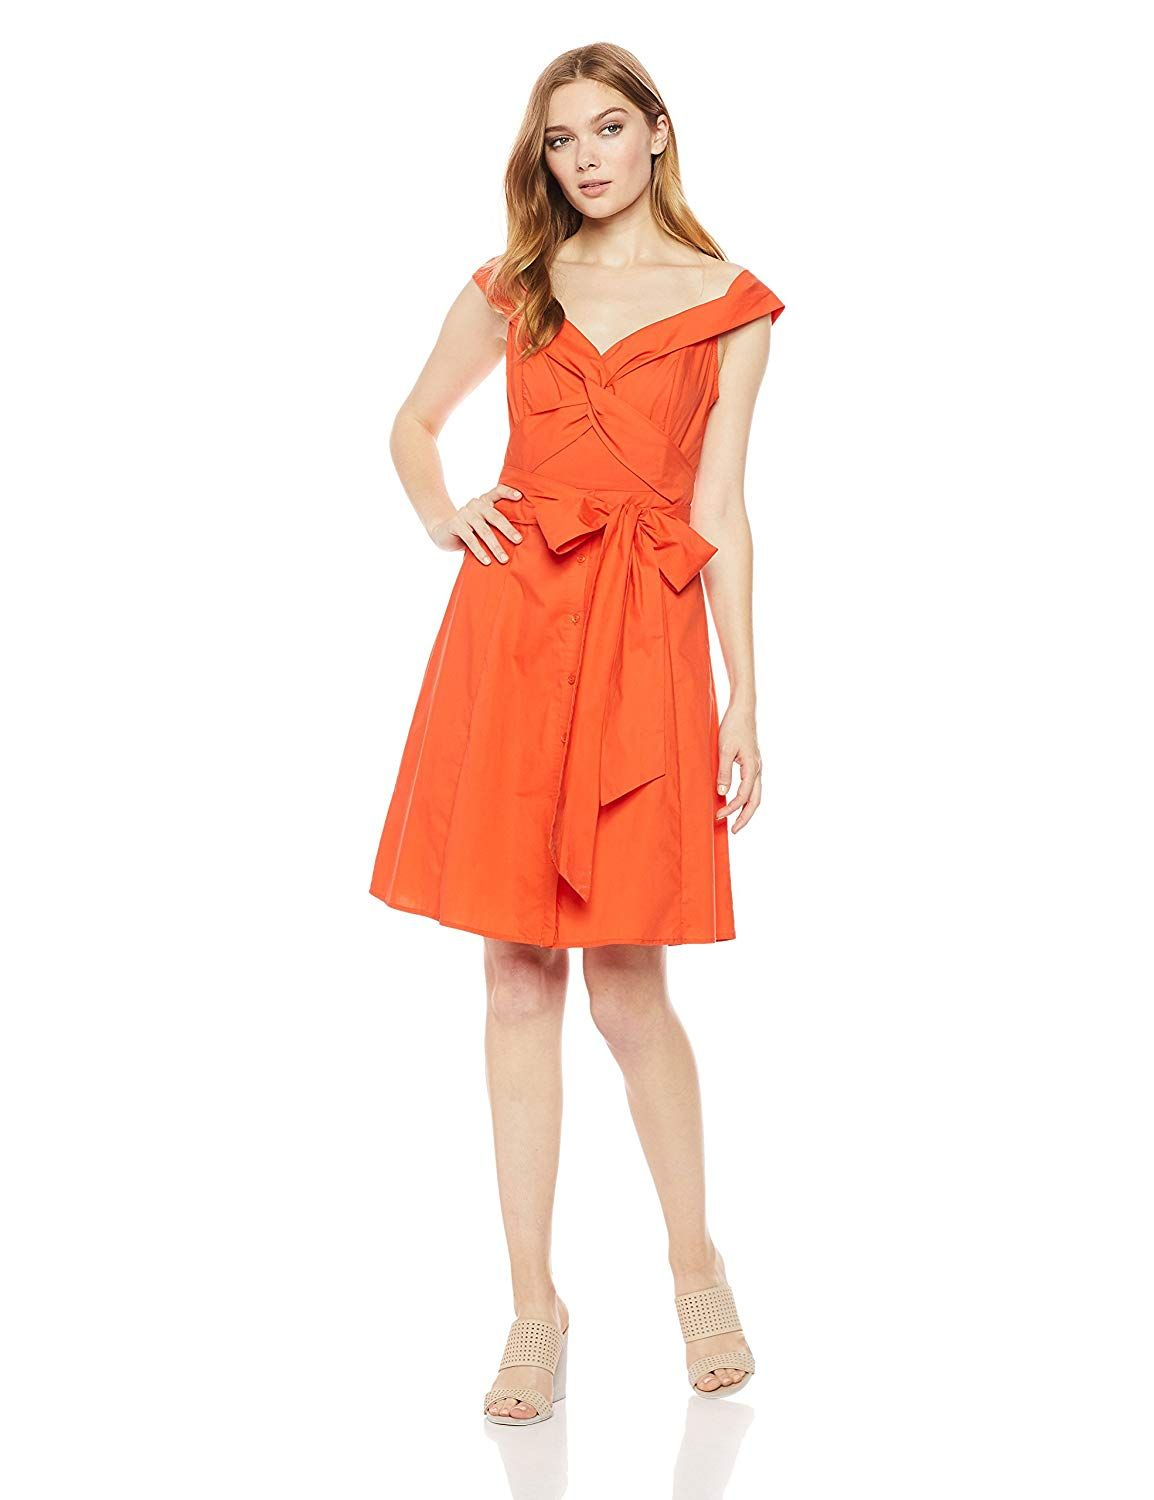 Astr The Label Women S Brittany Off The Shoulder Fit Flare Casual Dress With Belt At Amazon Women S Clothing Sto Flare Dress Casual Casual Dress Orange Dress [ 1500 x 1154 Pixel ]